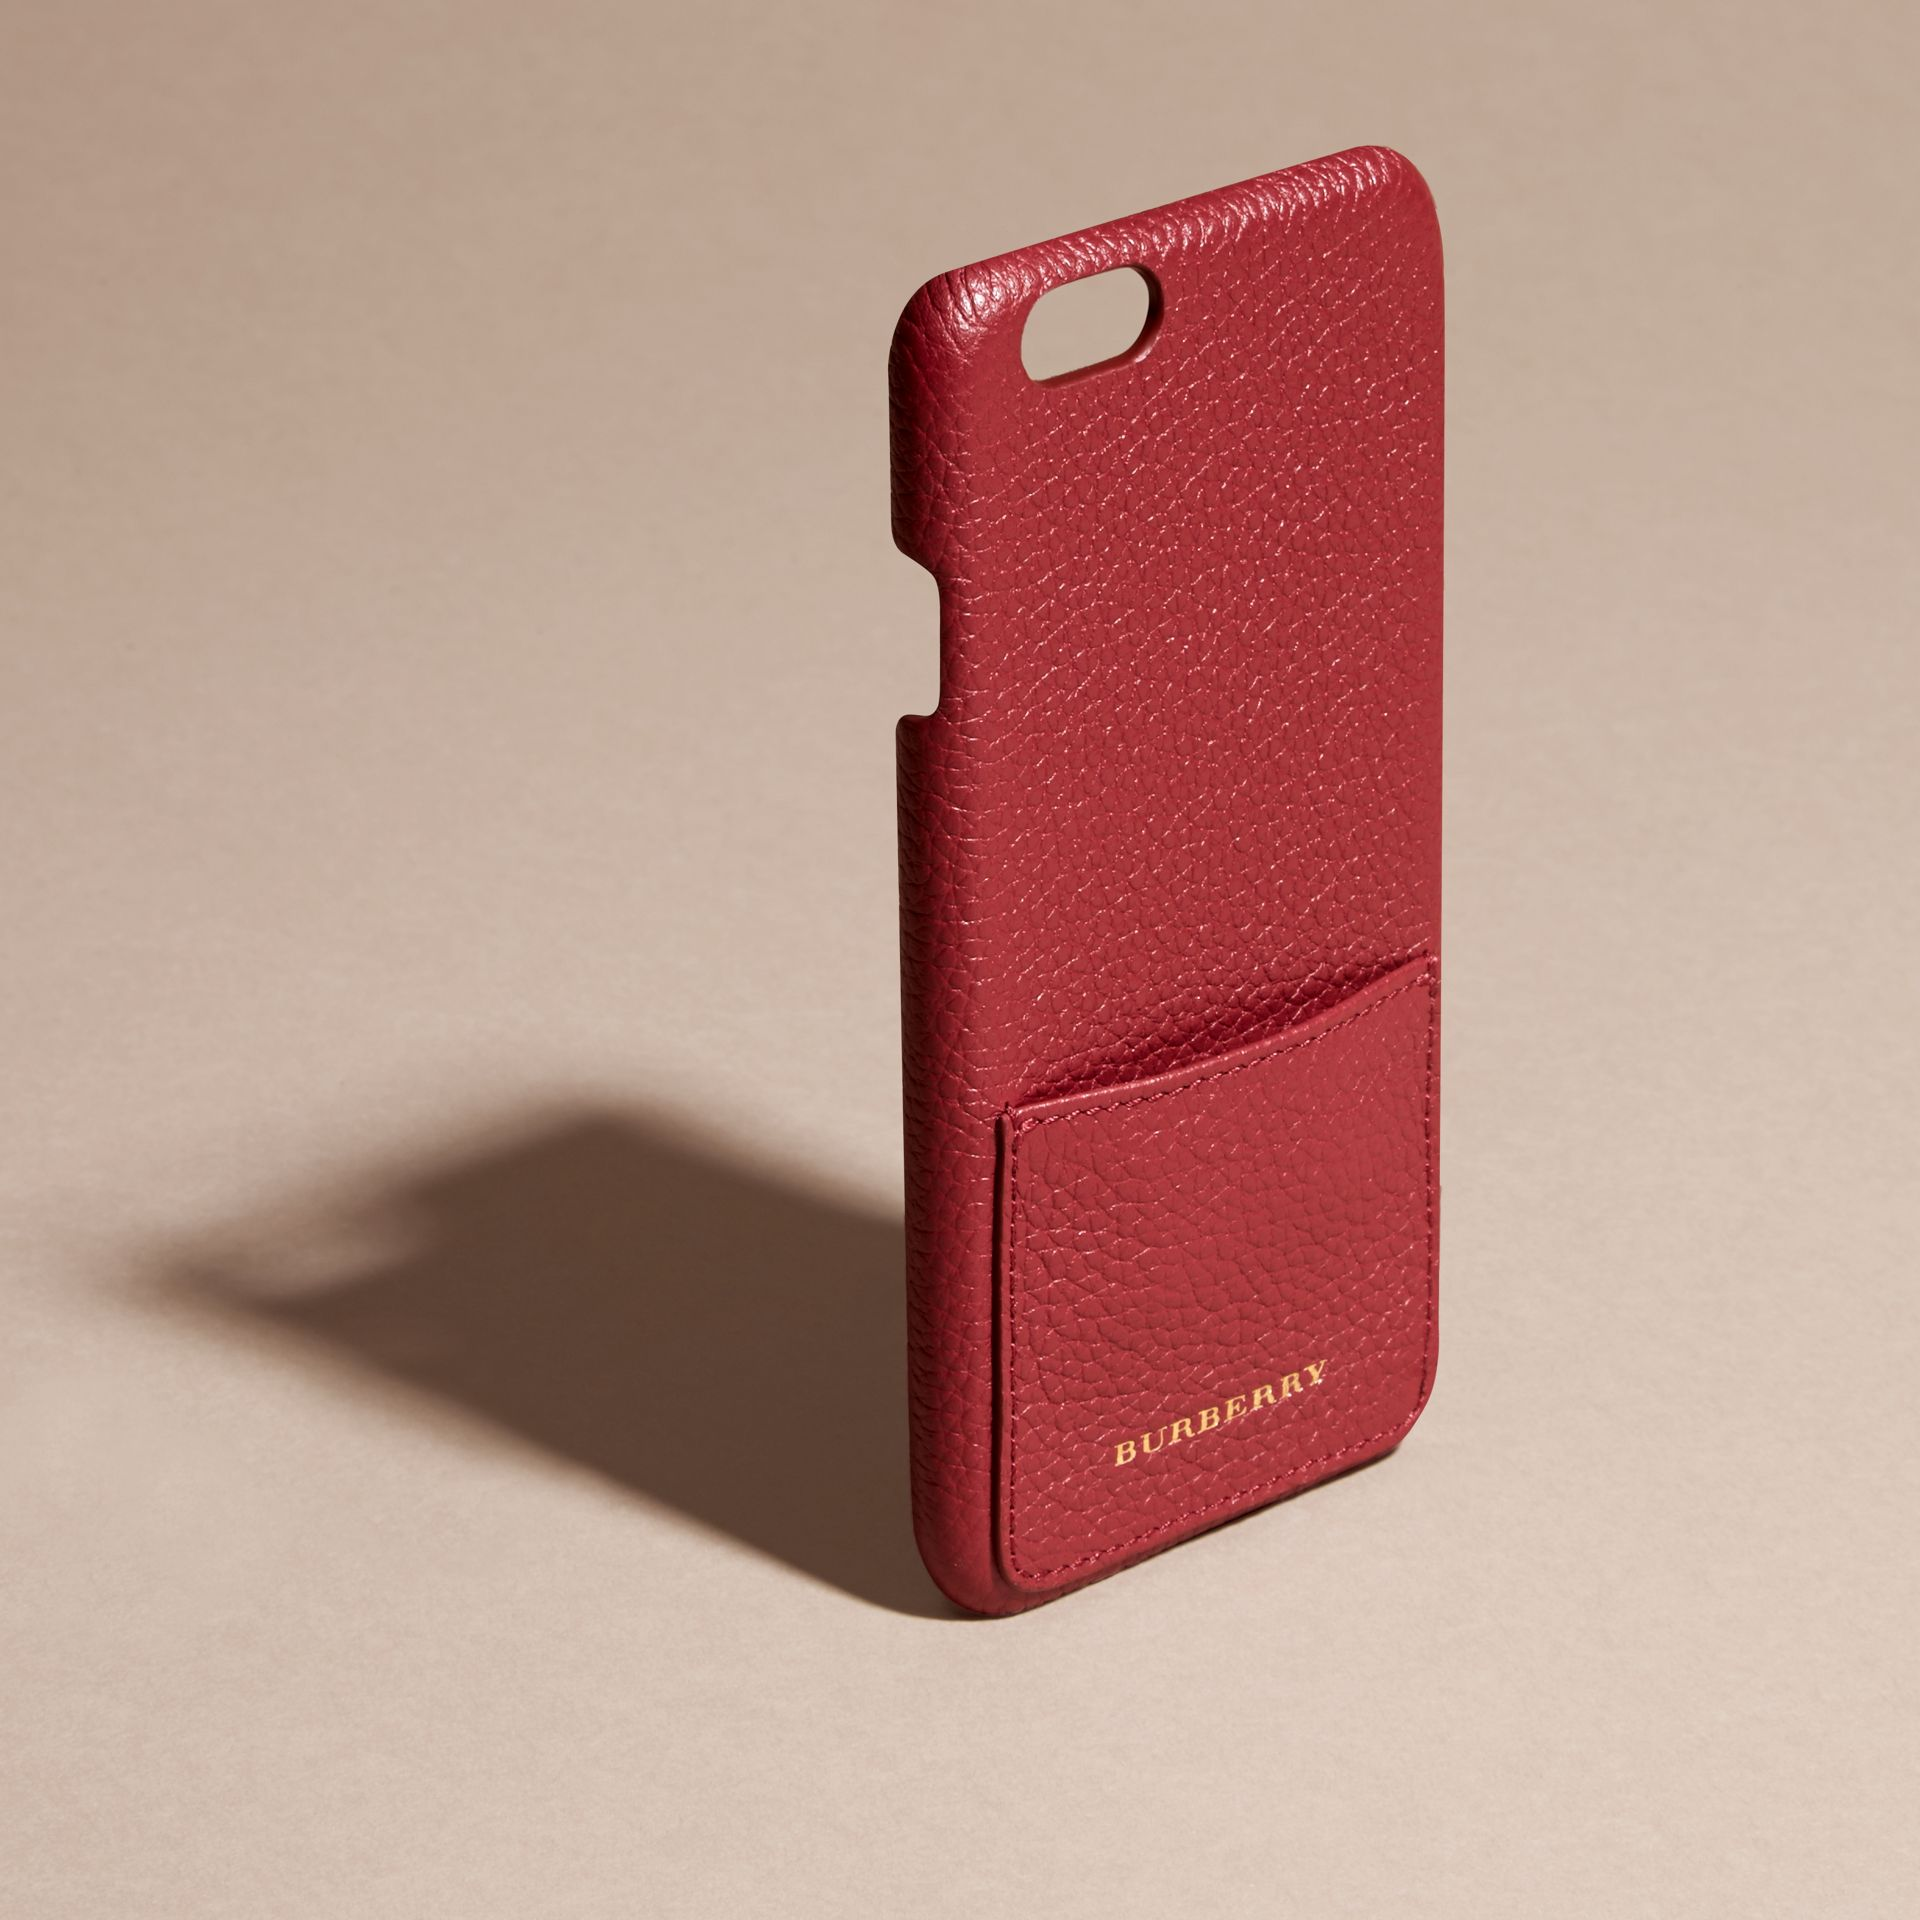 Étui pour iPhone 6 en cuir grené (Rouge Parade) | Burberry - photo de la galerie 3